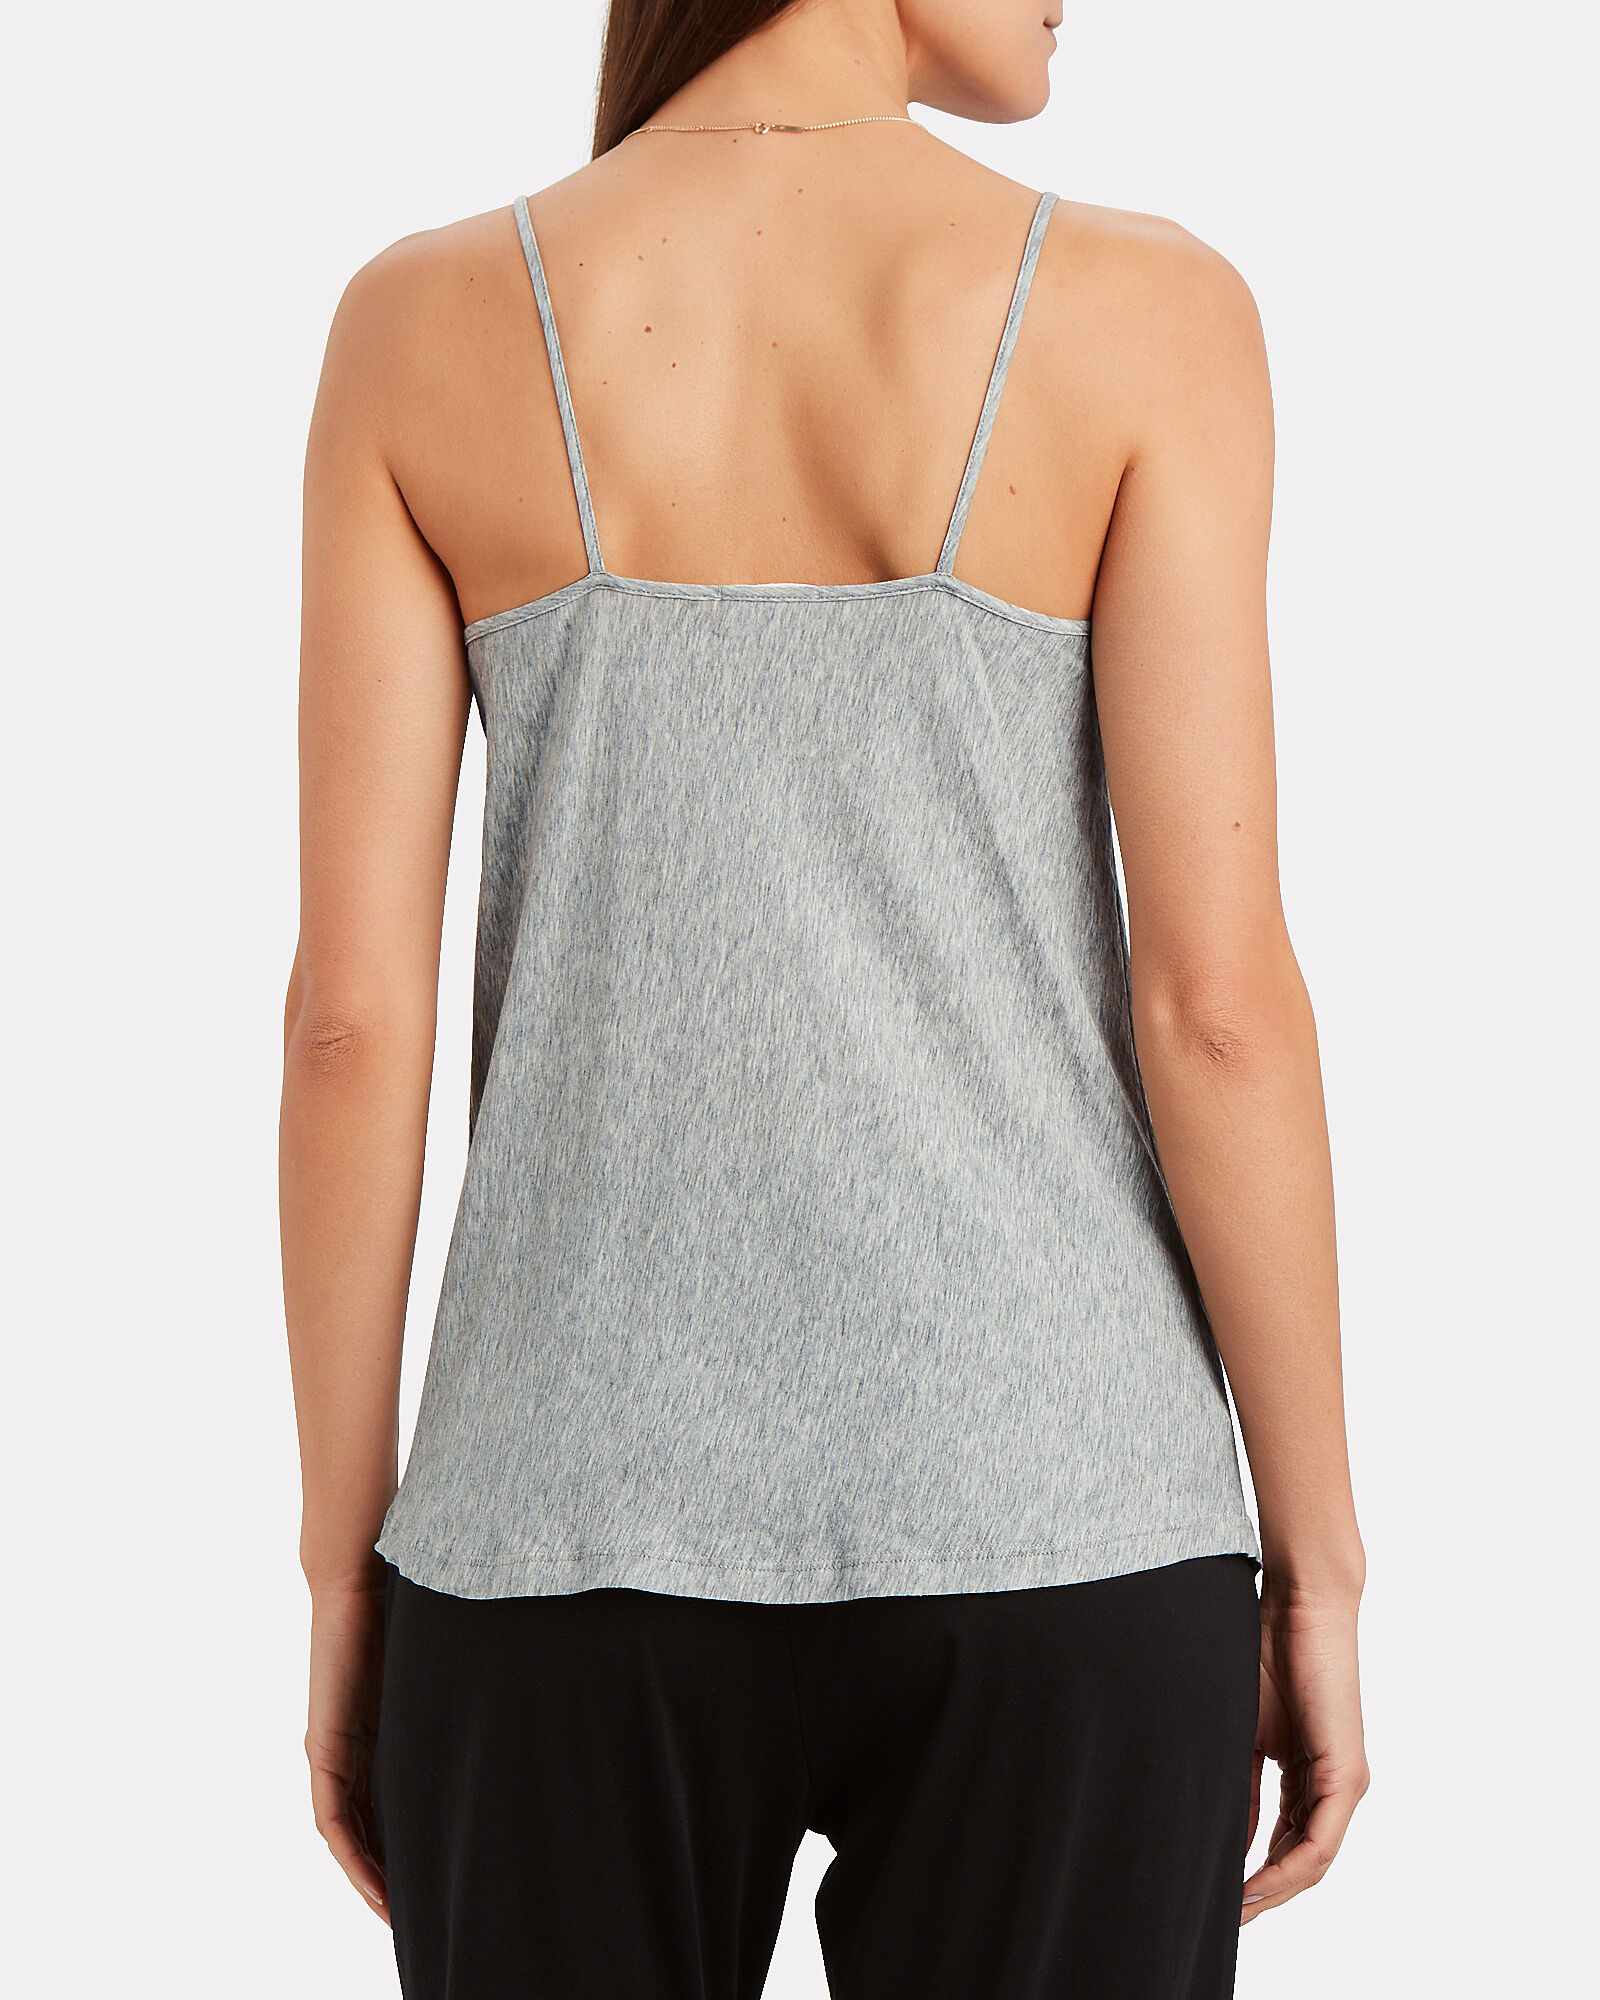 Leslie Pima Cotton Tank, GREY-LT, hi-res